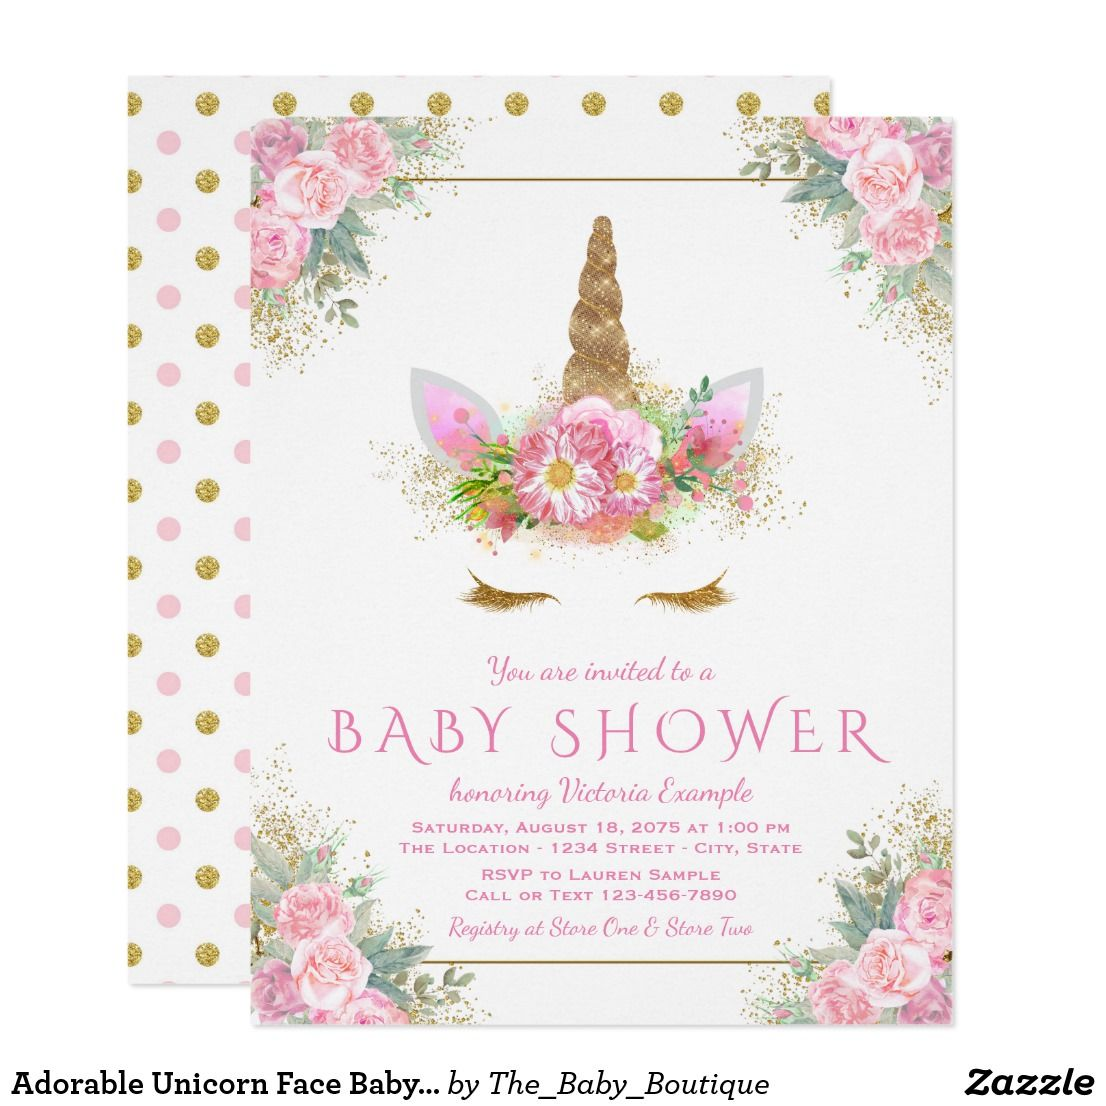 c3a1adead0db Unicorn BABY SHOWER Glam Gold   Pink Floral Polka Dots Pretty   Adorable  Personalized Baby Shower Invites Announcements Invitations Card  unicorn    ...